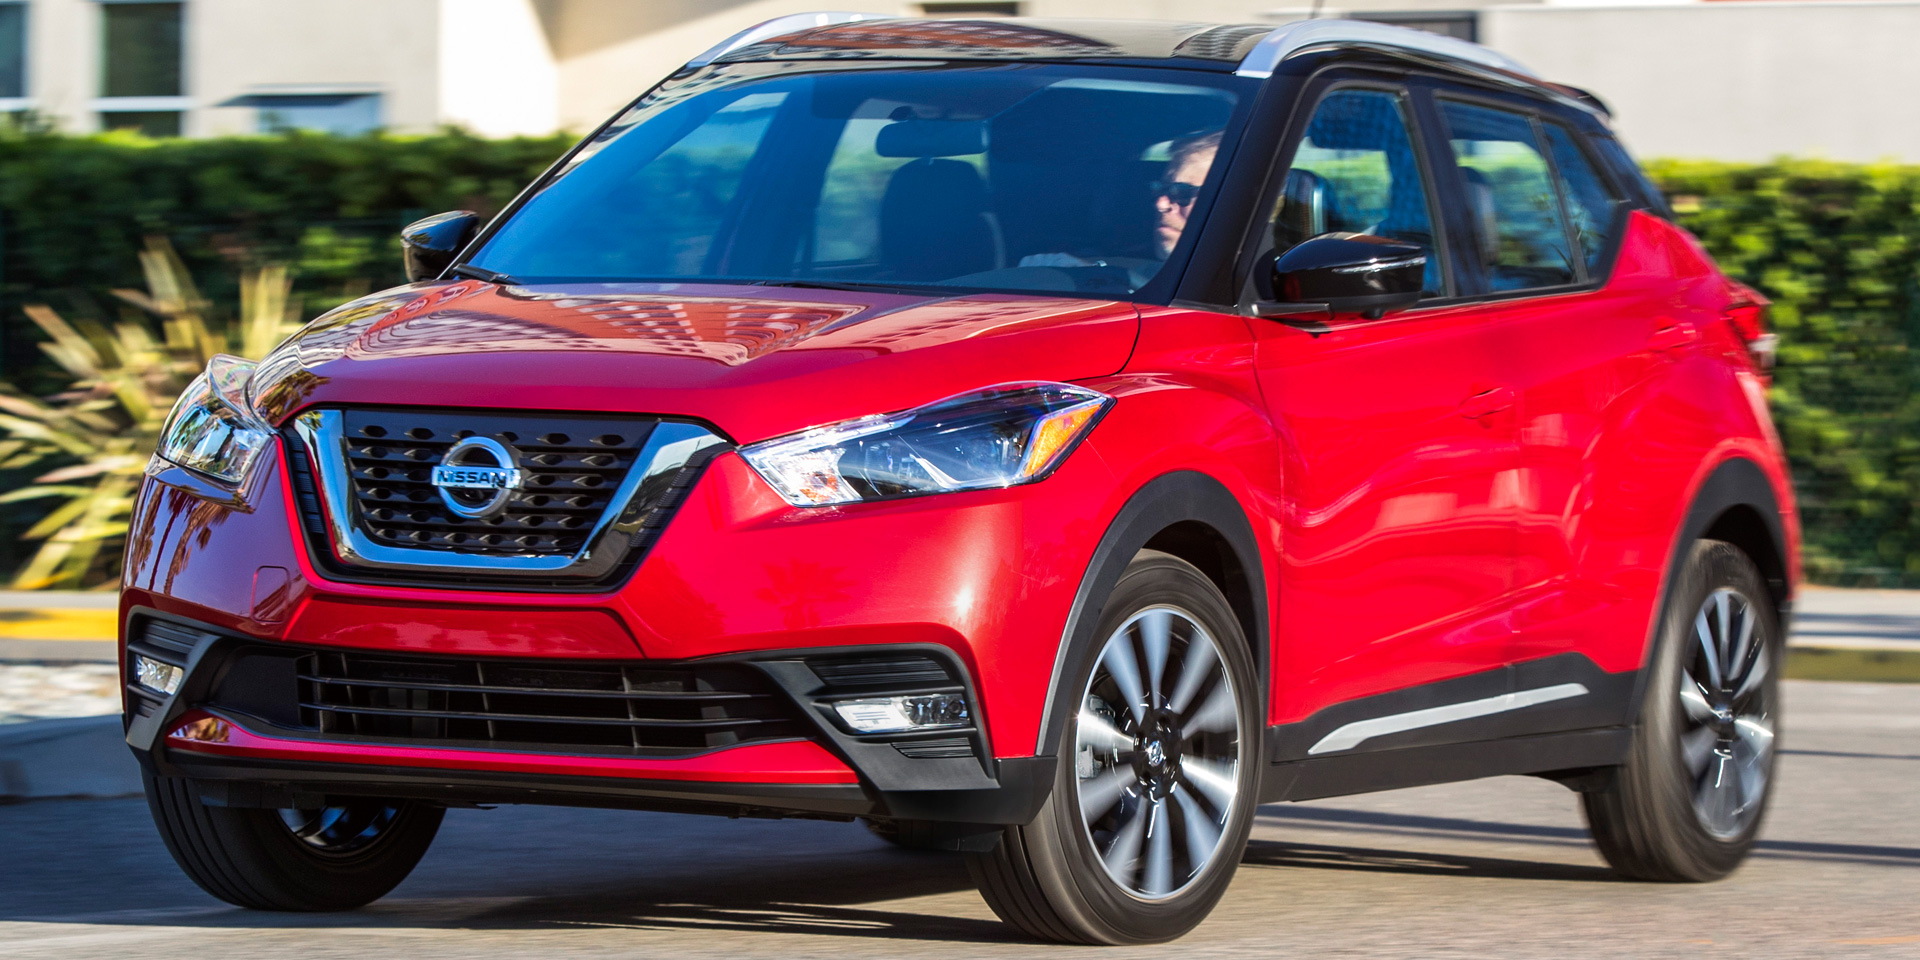 2019 Nissan Sentra >> 2019 - Nissan - Kicks - Vehicles on Display | Chicago Auto ...